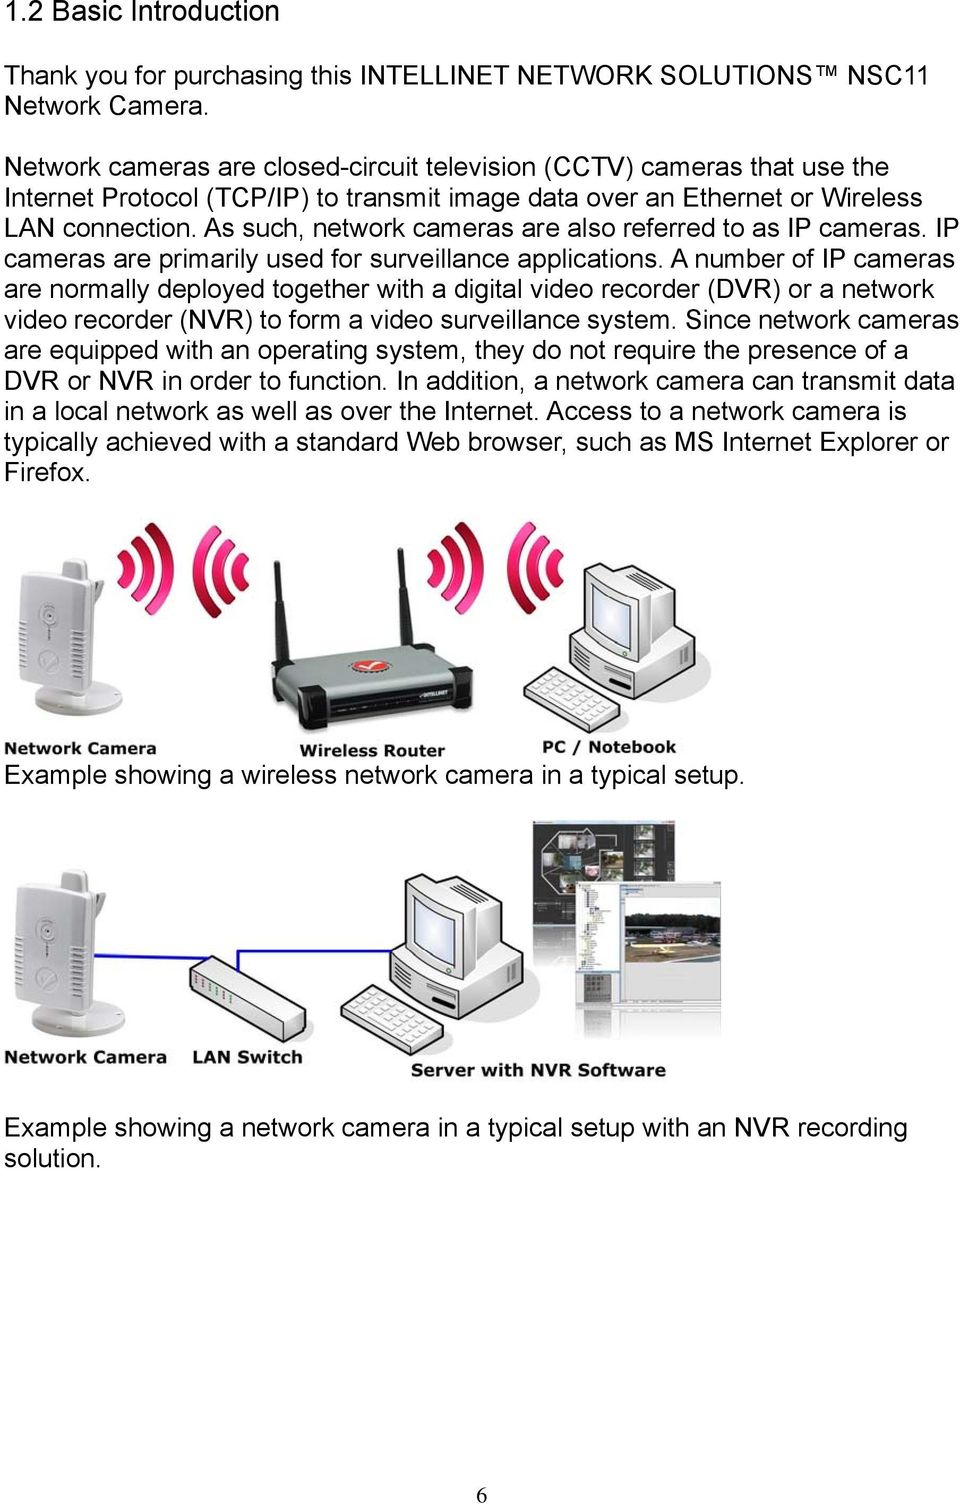 As such, network cameras are also referred to as IP cameras. IP cameras are primarily used for surveillance applications.